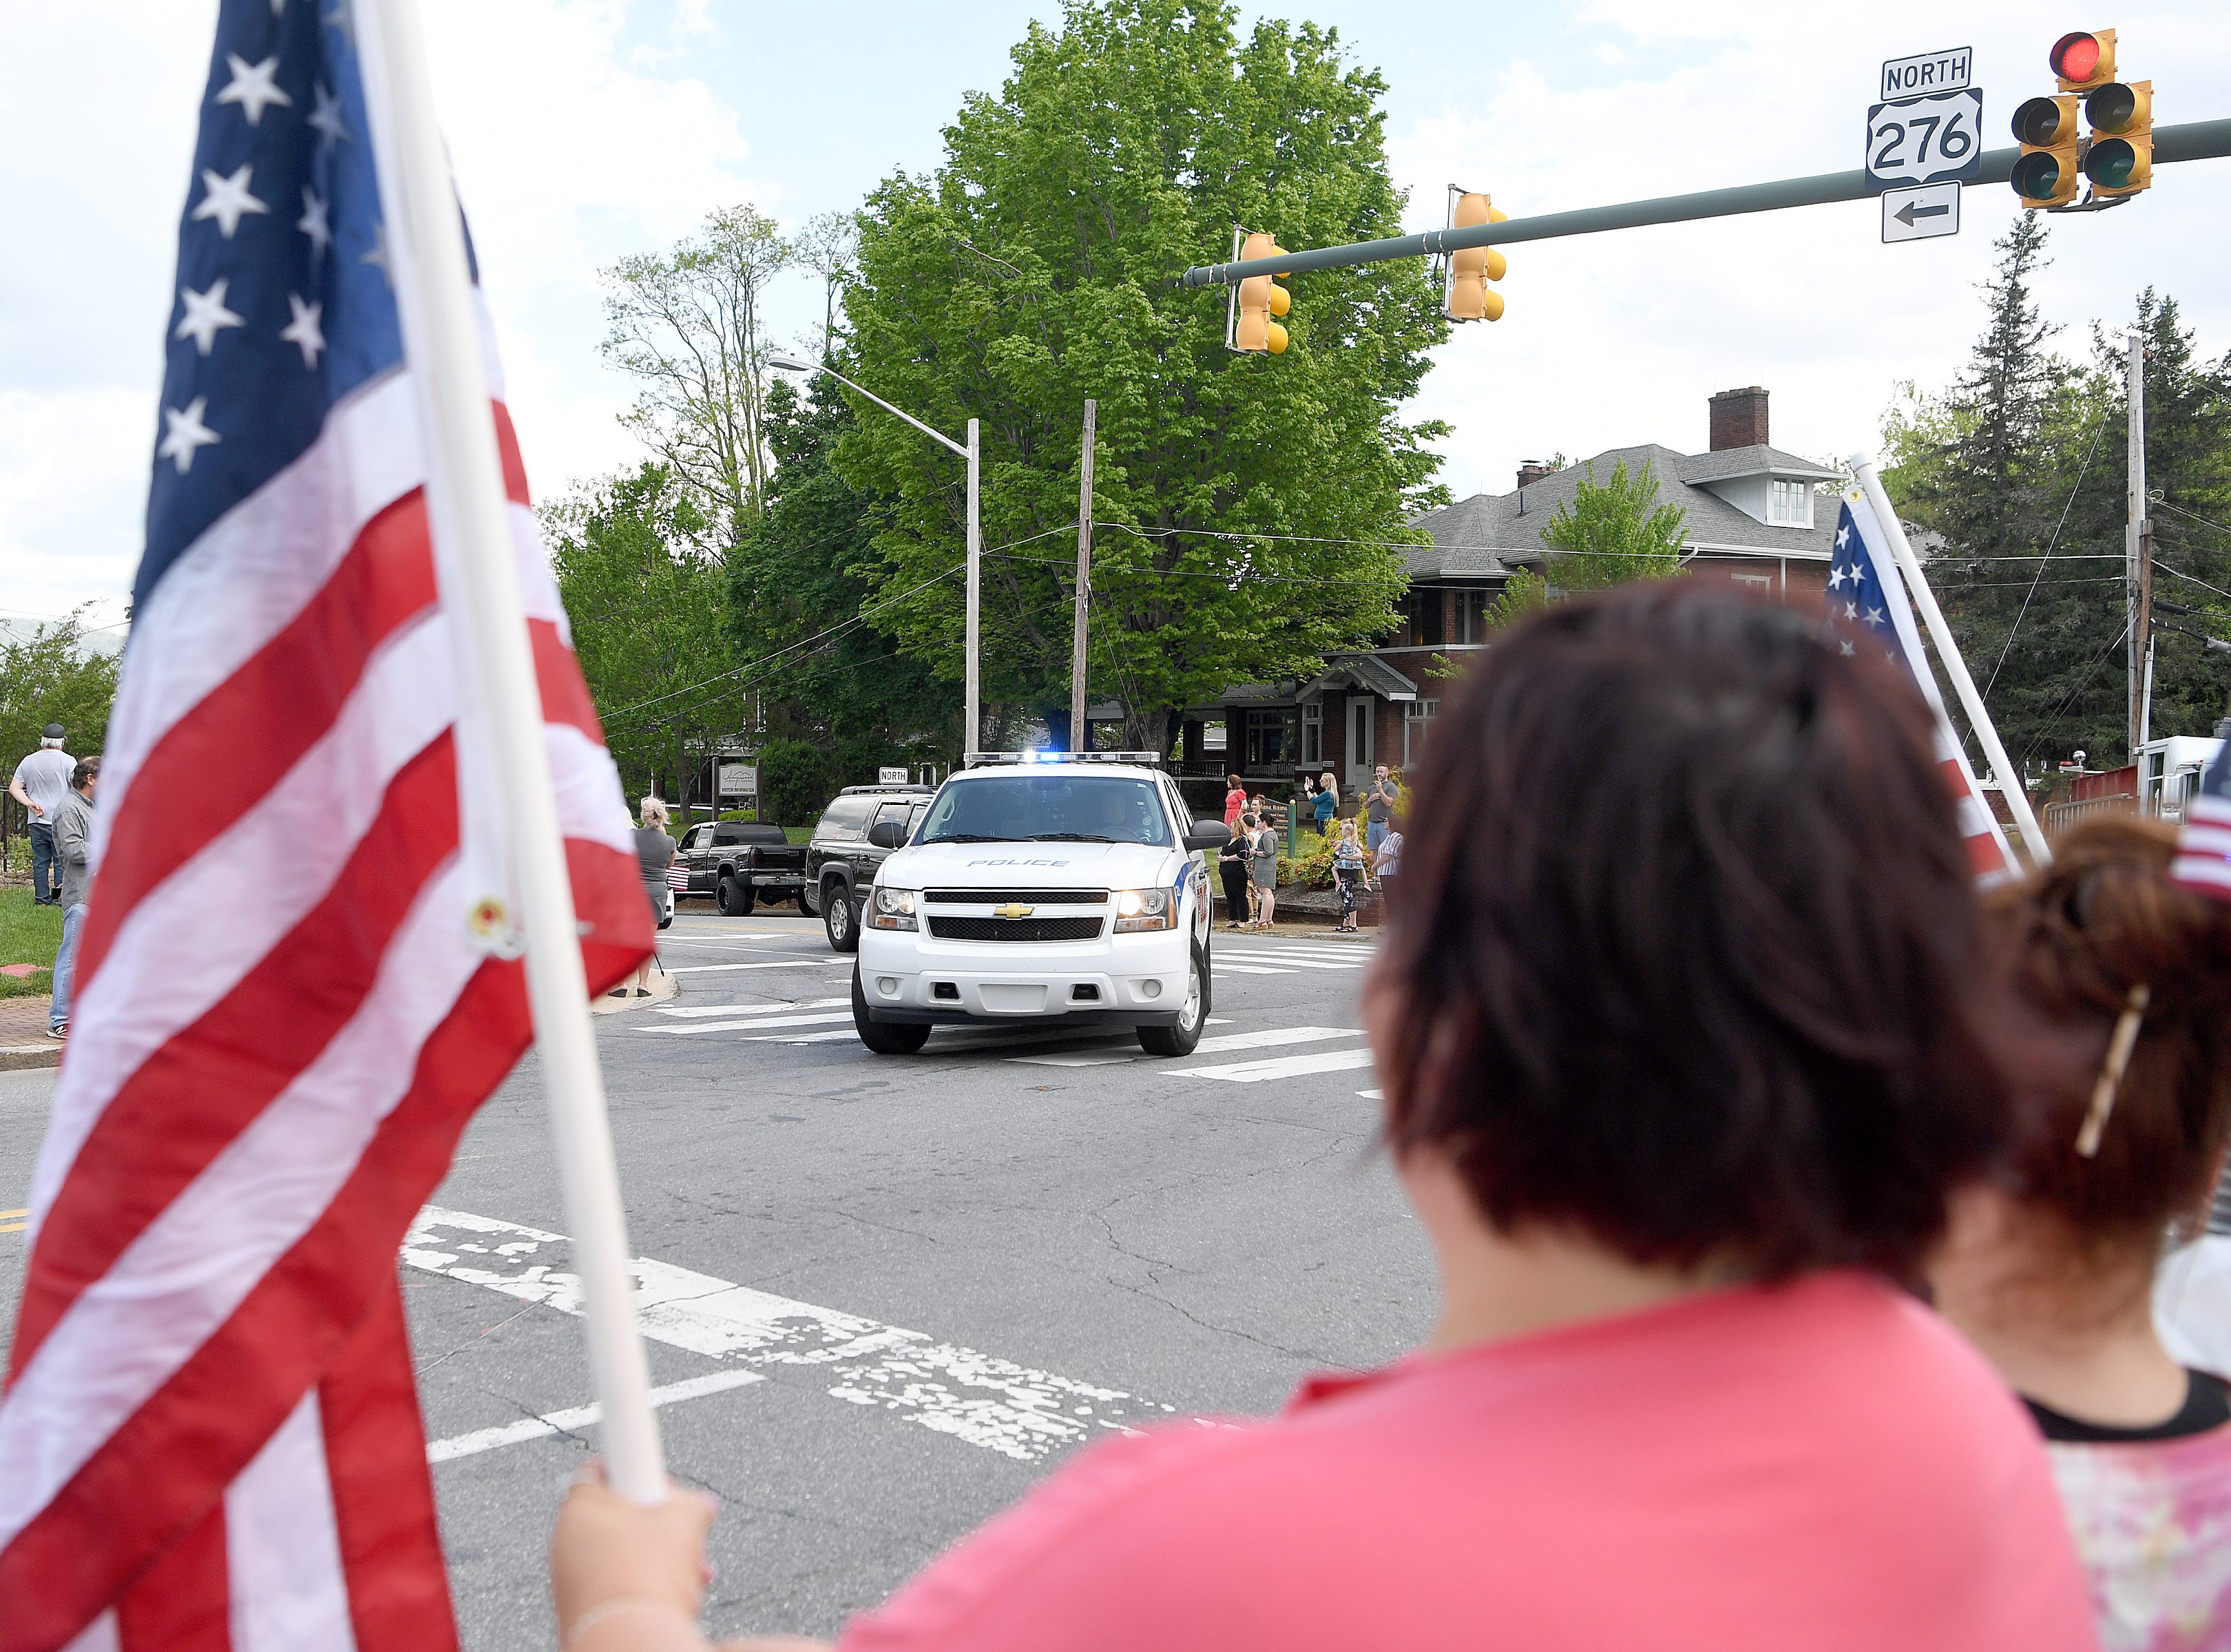 Police escort the body of UNC Charlotte shooting victim Riley Howell to Wells Funeral Home in Waynesville where they he was received by a hero's welcome on May 2, 2019. Police say that Howell's actions during the shooting cost him his life and saved the lives of others.